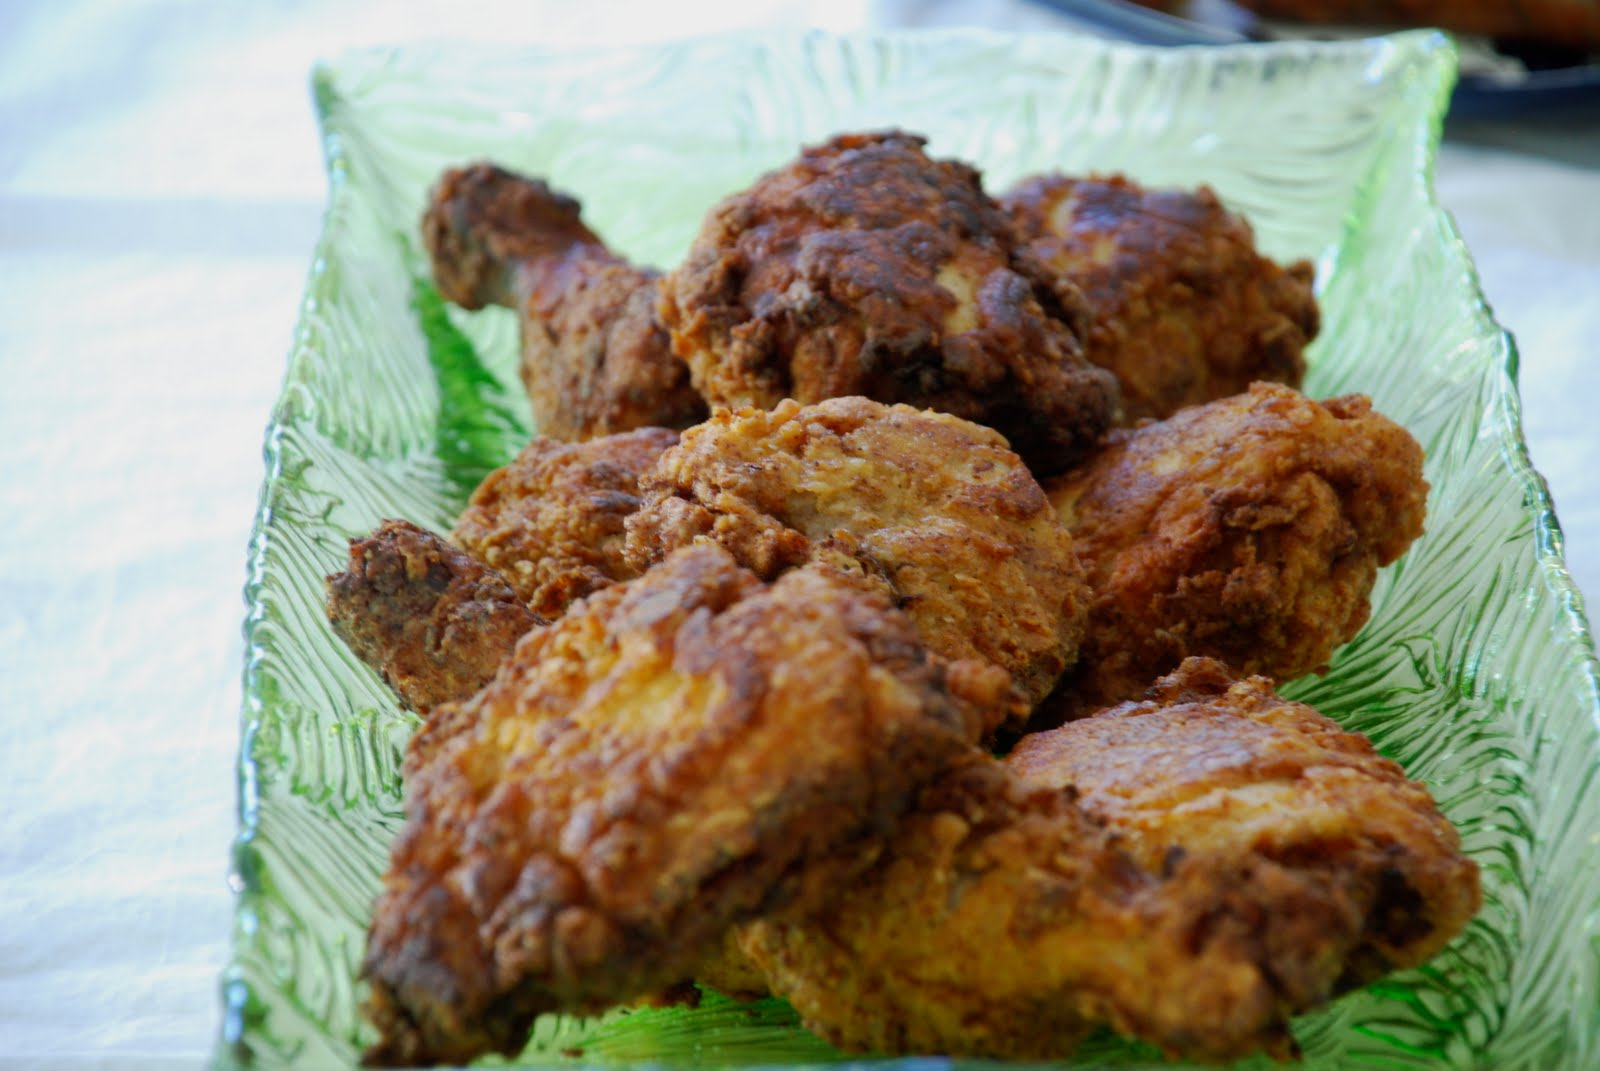 Tomatoes on the Vine: Buttermilk Fried Chicken